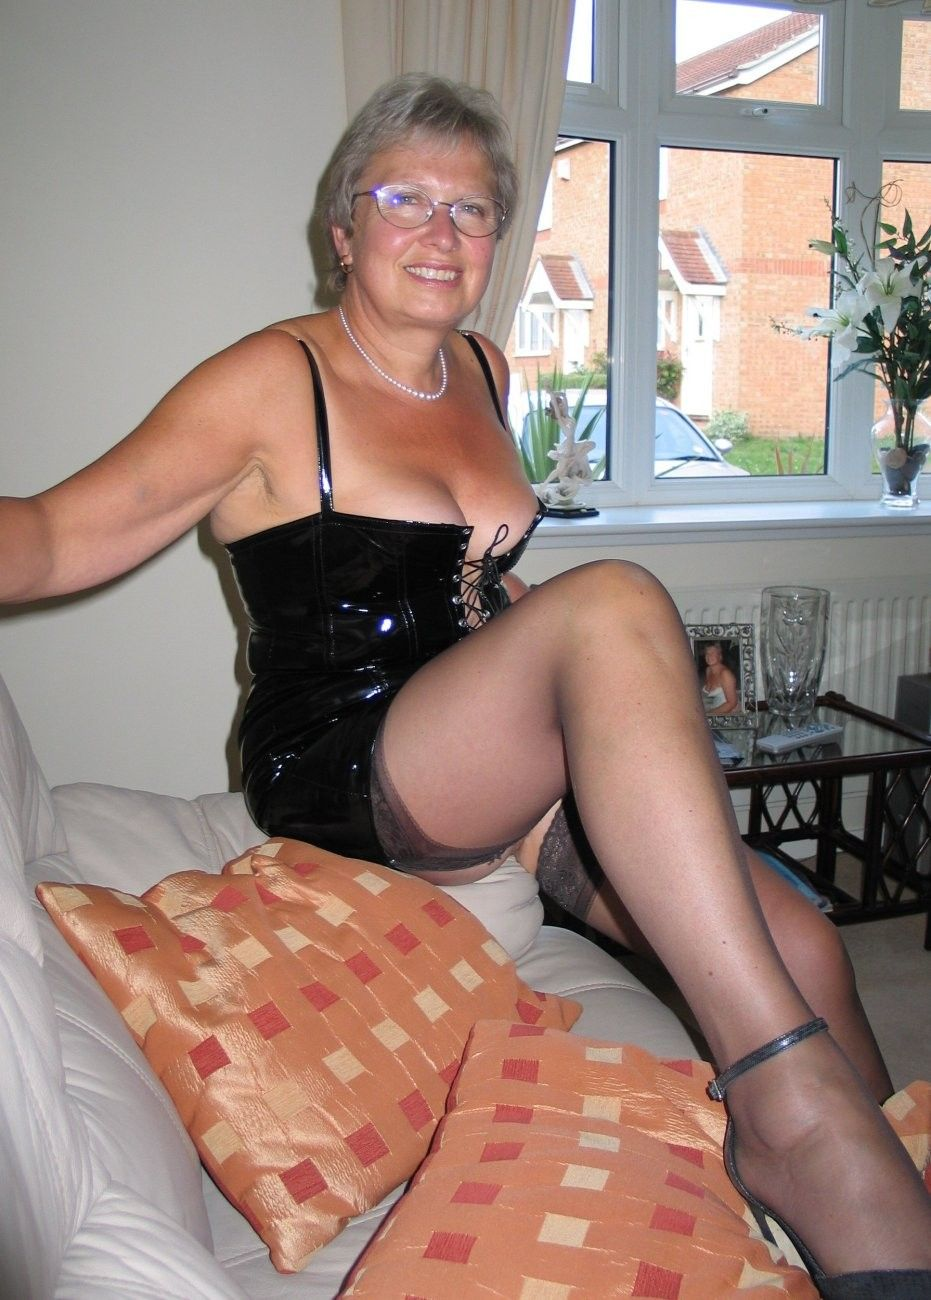 find member personals swinger view